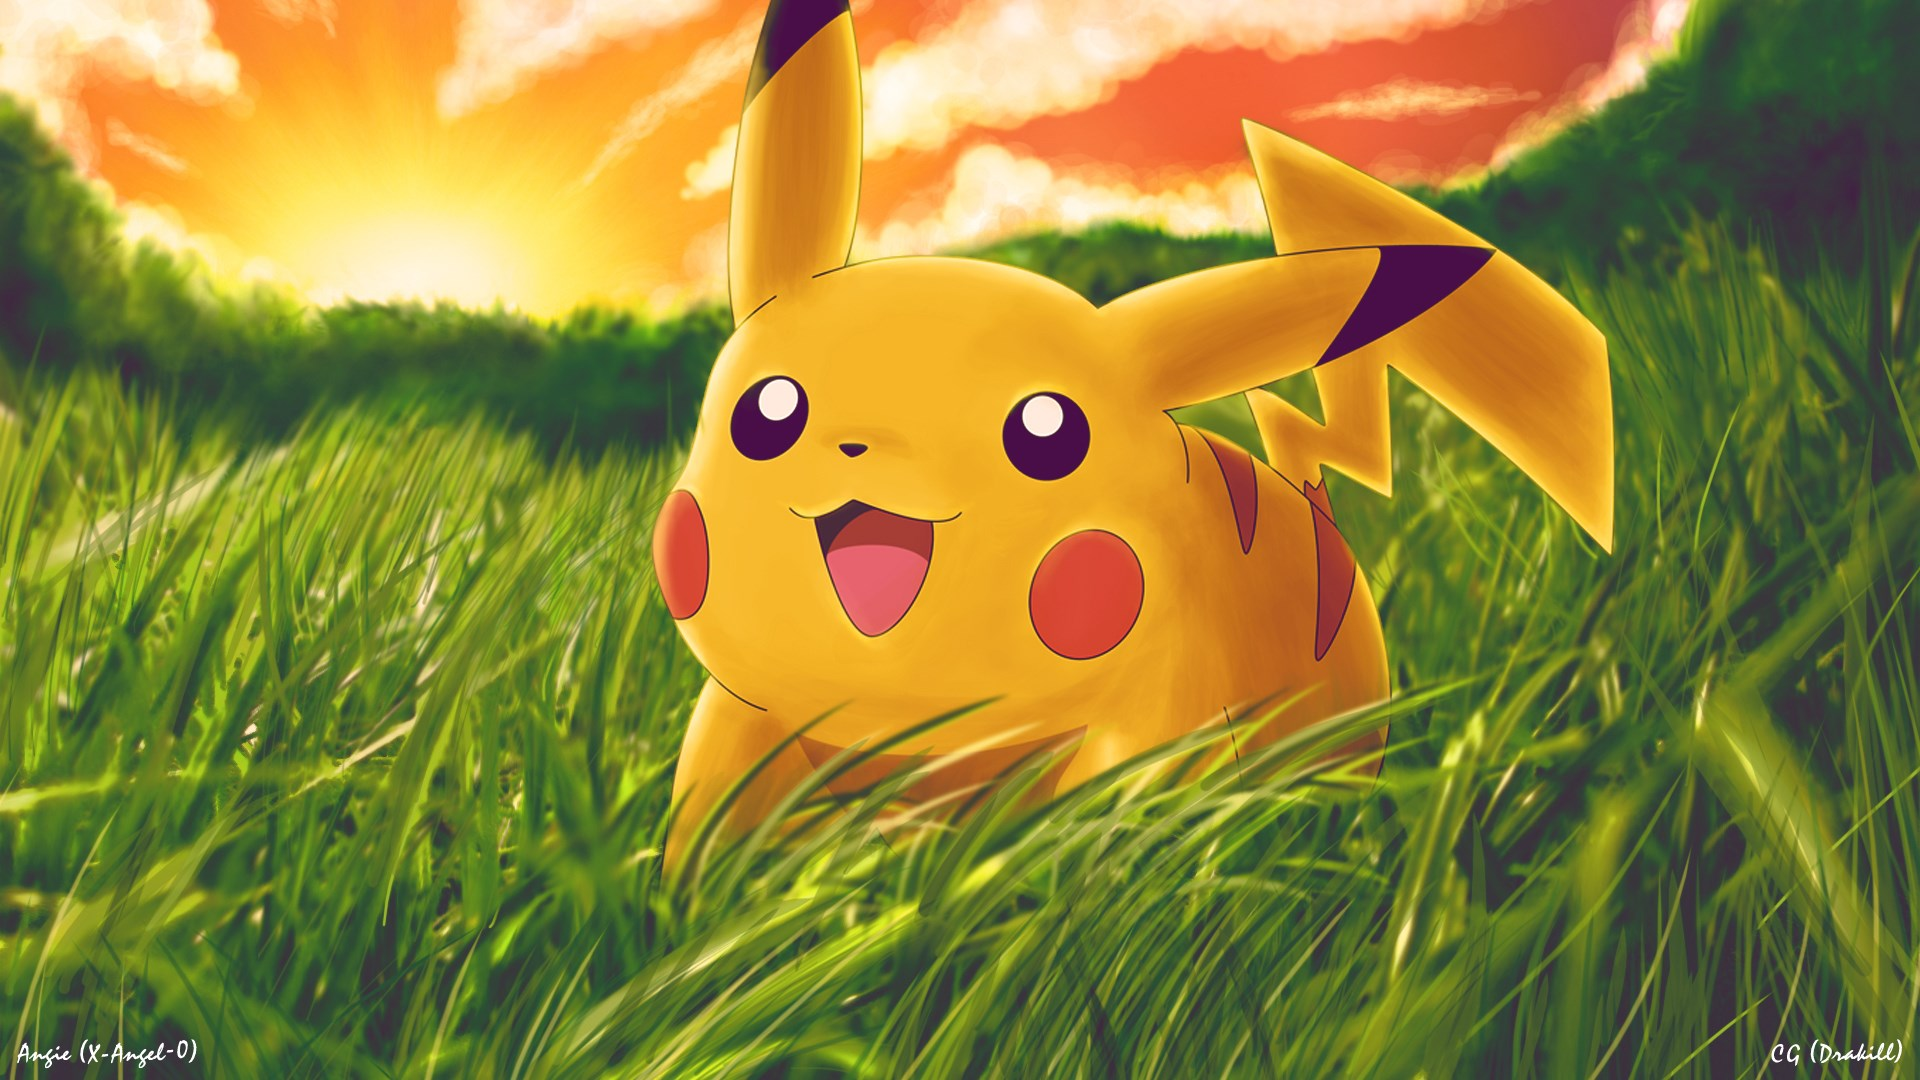 Pikachu Pokemon Cartoon Wallpaper 1920x1080 9538